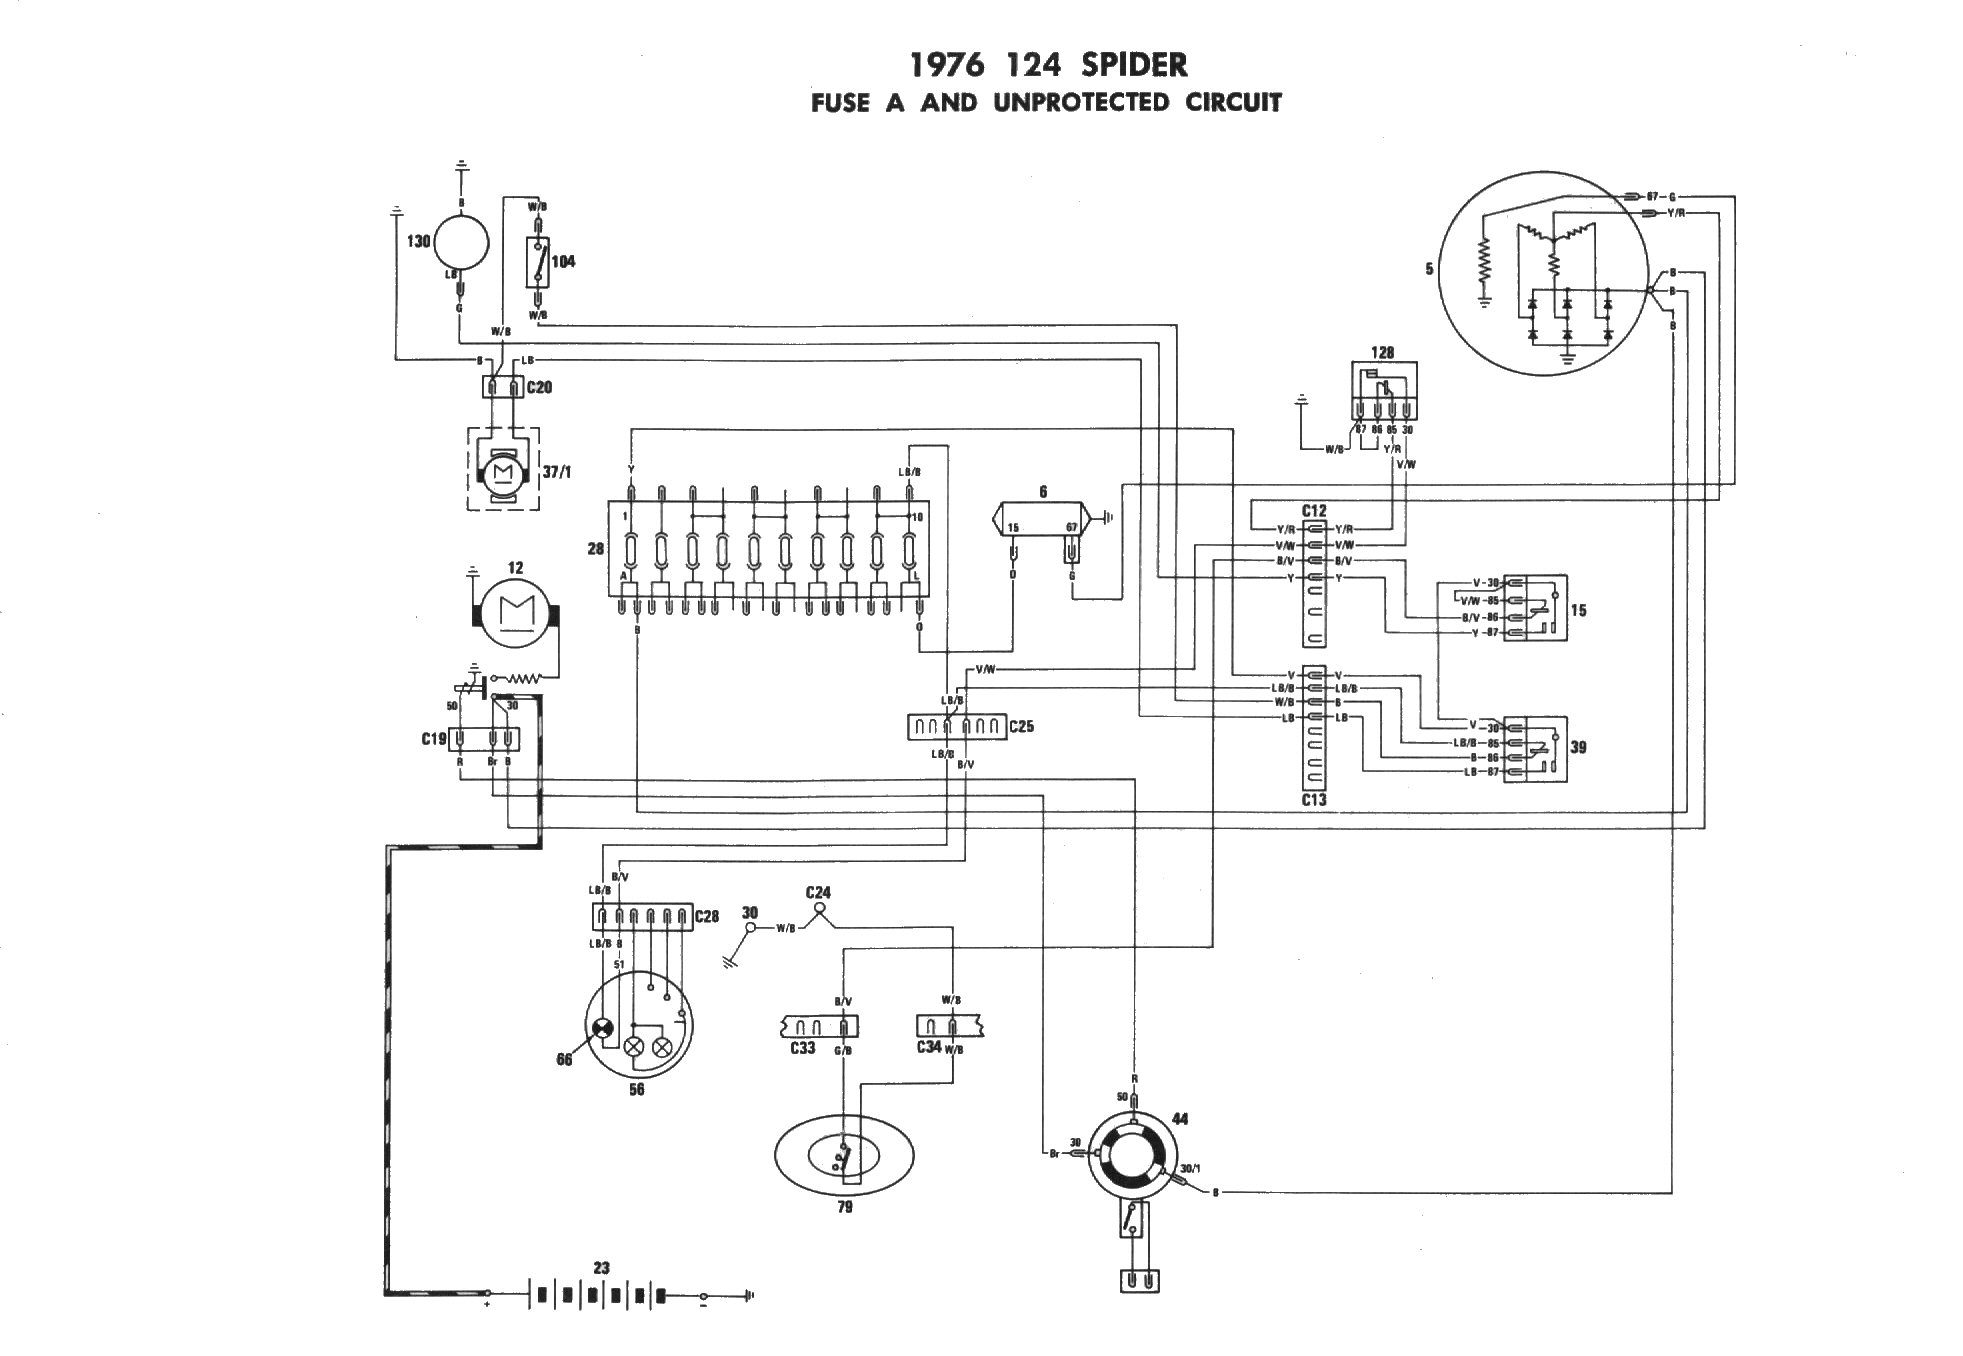 1978 Fiat Spider Wiring Diagram Library Ducato Diagrams